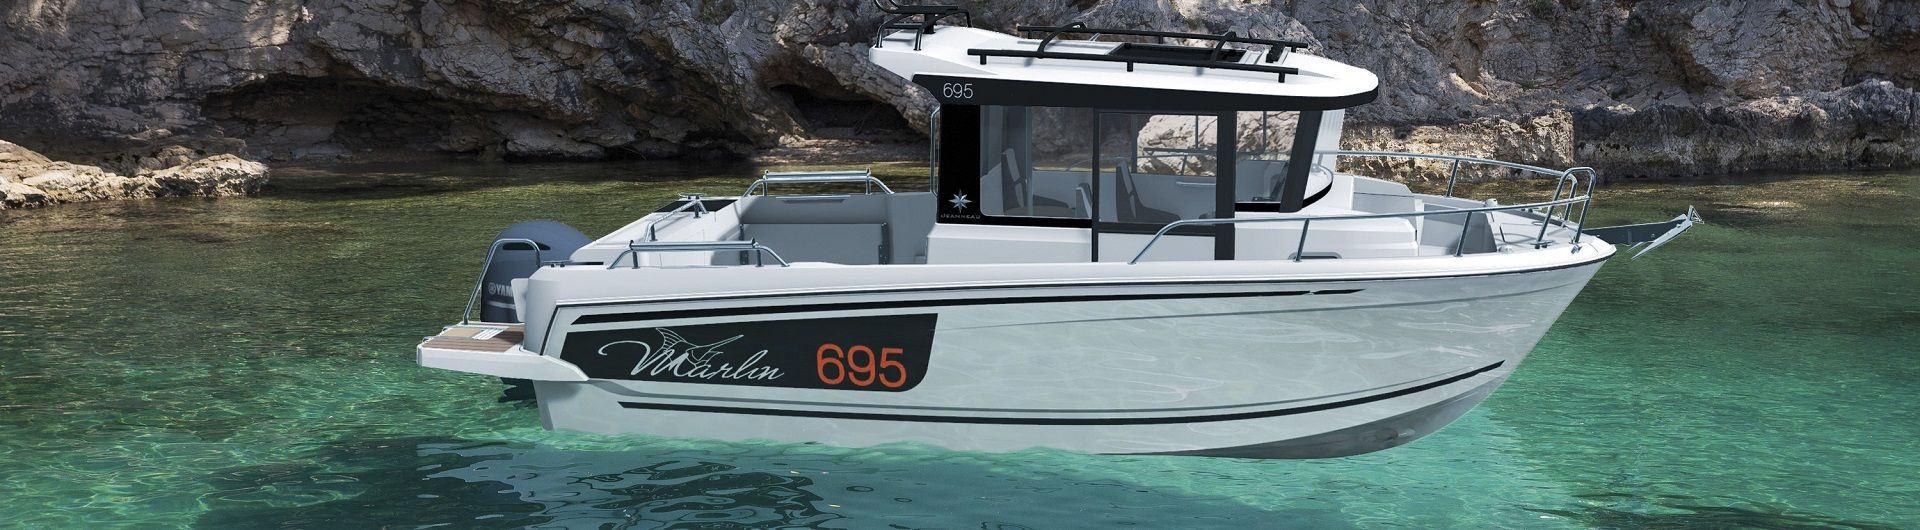 Sportboot Jeanneau Merry Fisher 695 Serie 2 Marlin Header